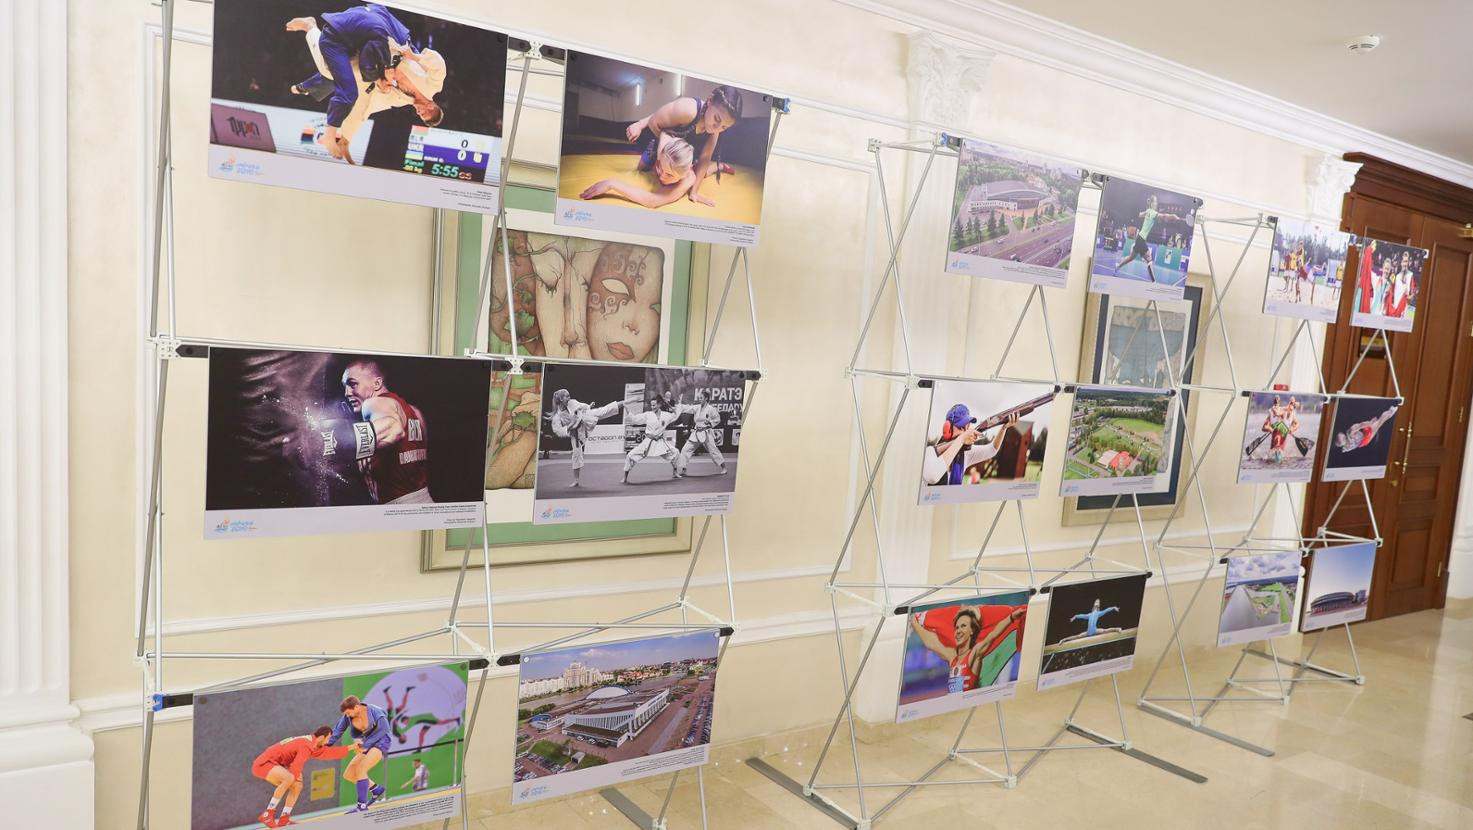 Photo exhibition opened to celebrate Belarus sport before Minsk 2019